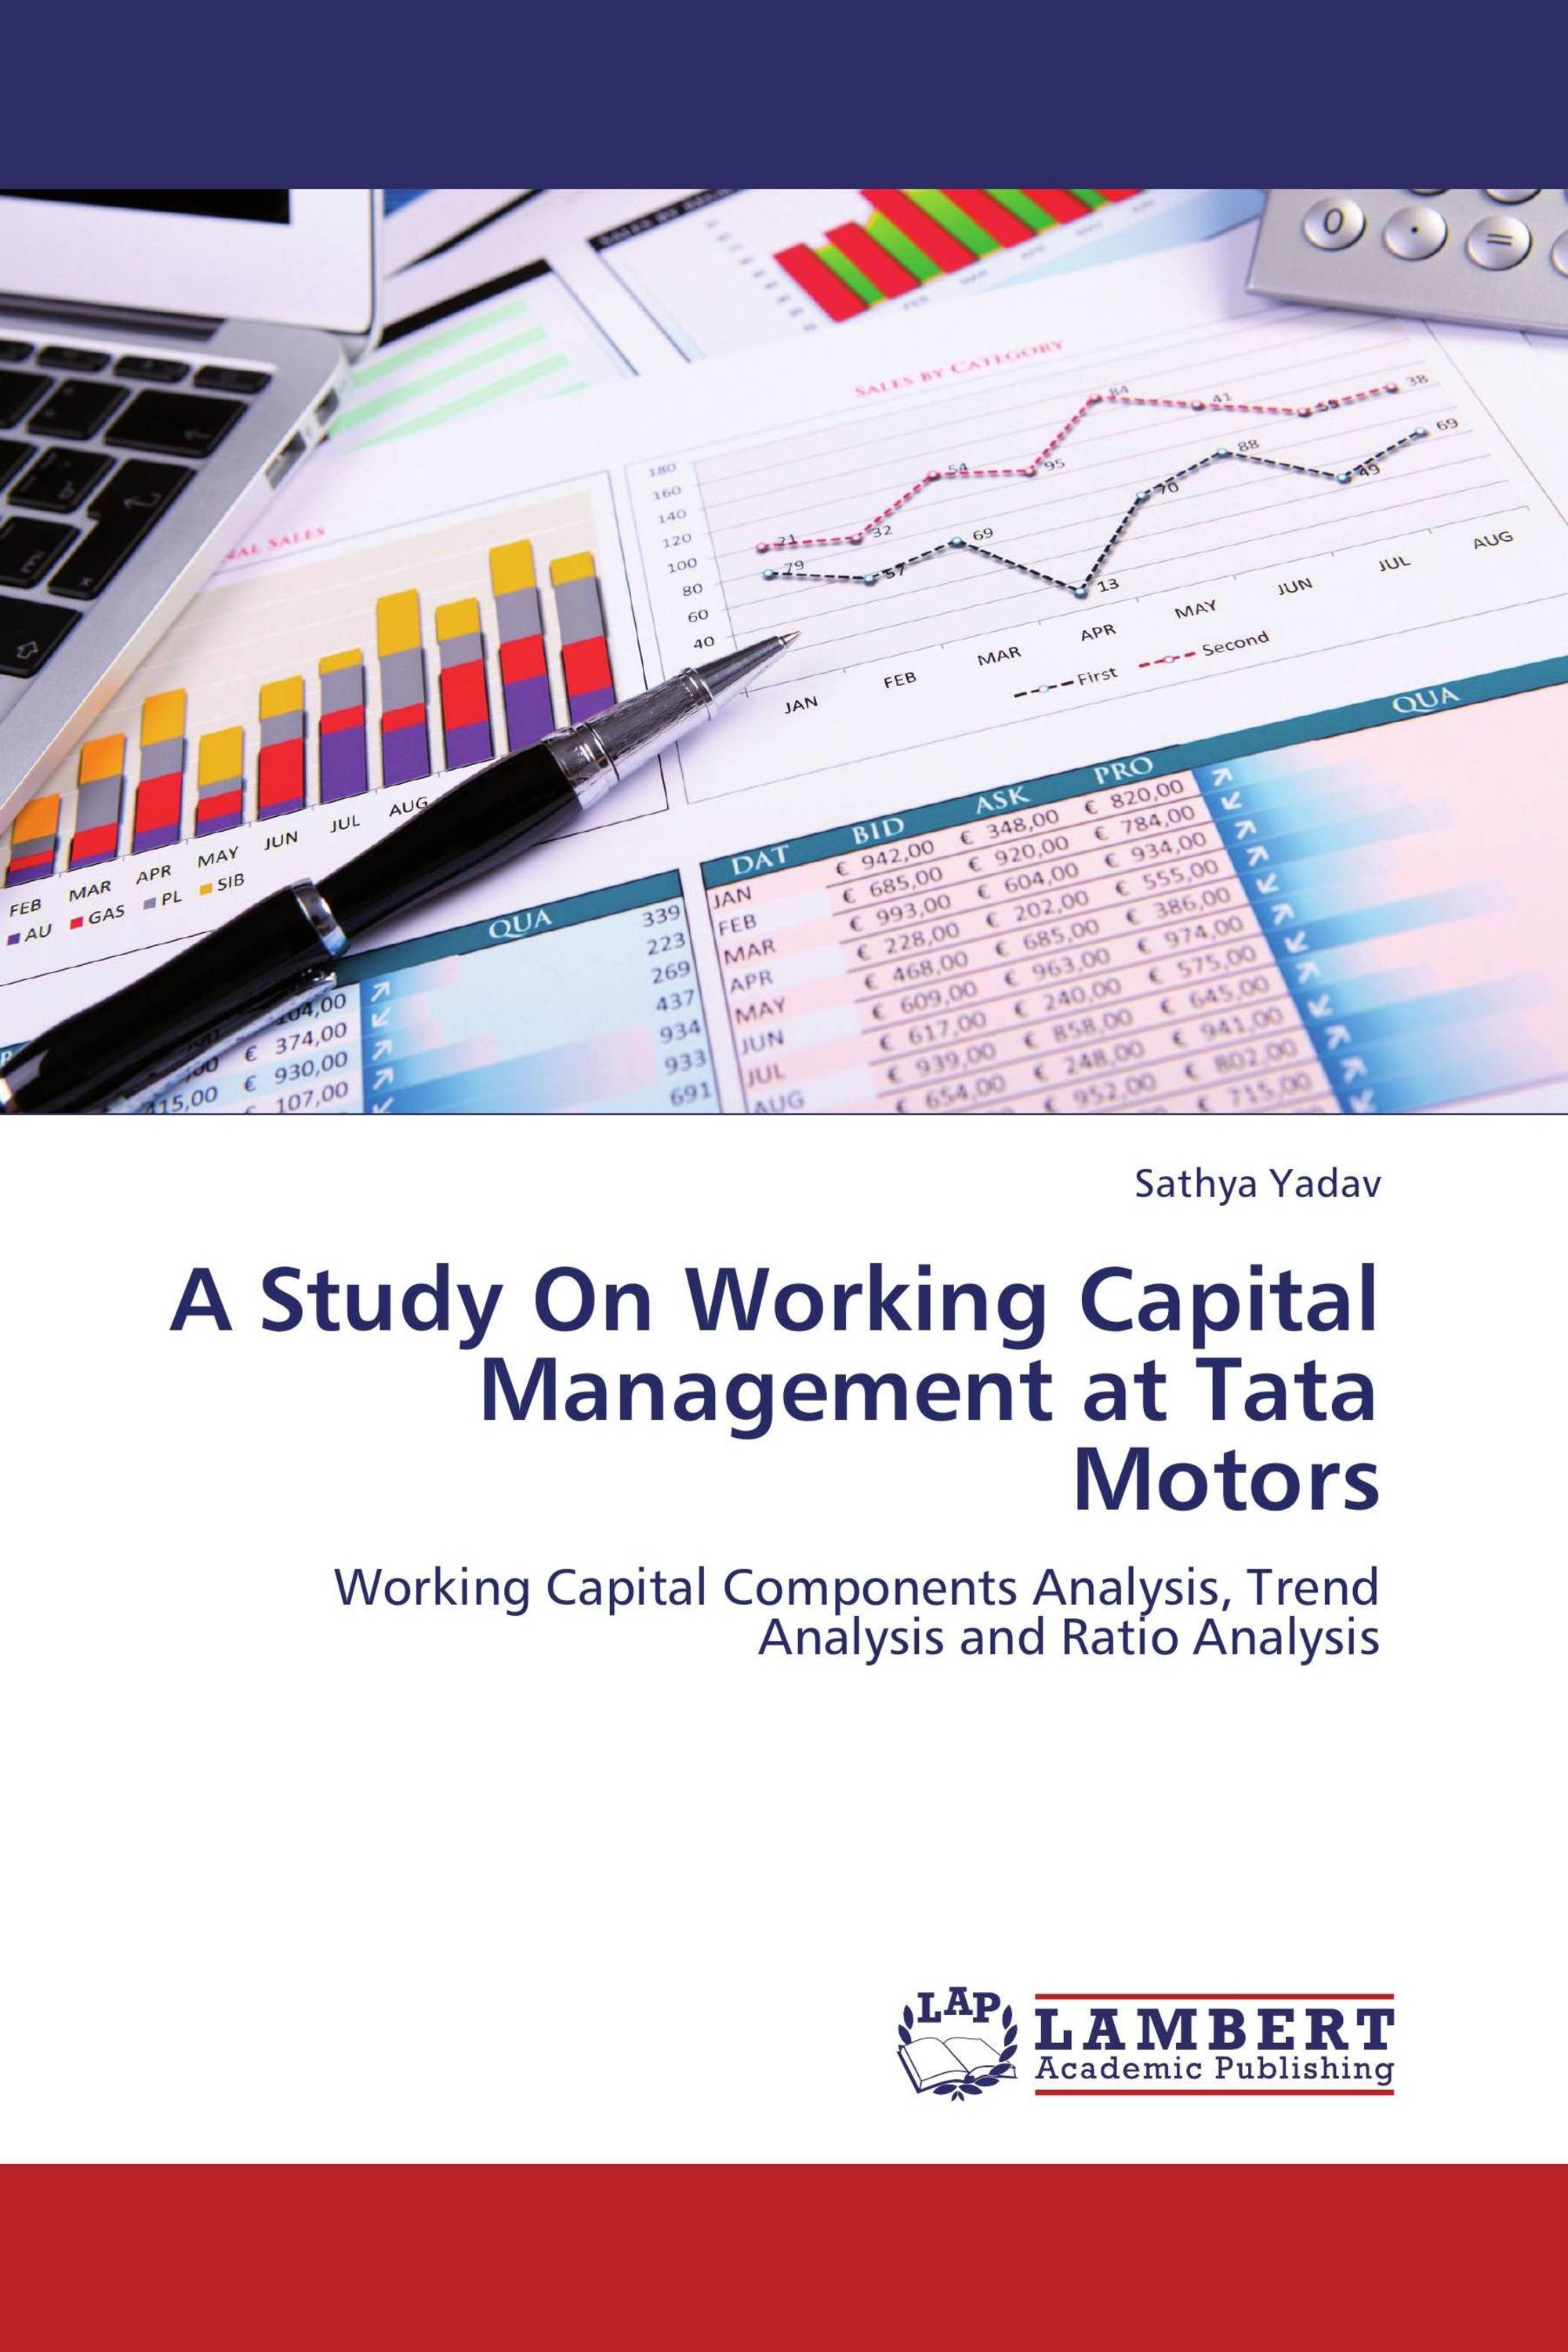 a study on working capital management at tata motors 978